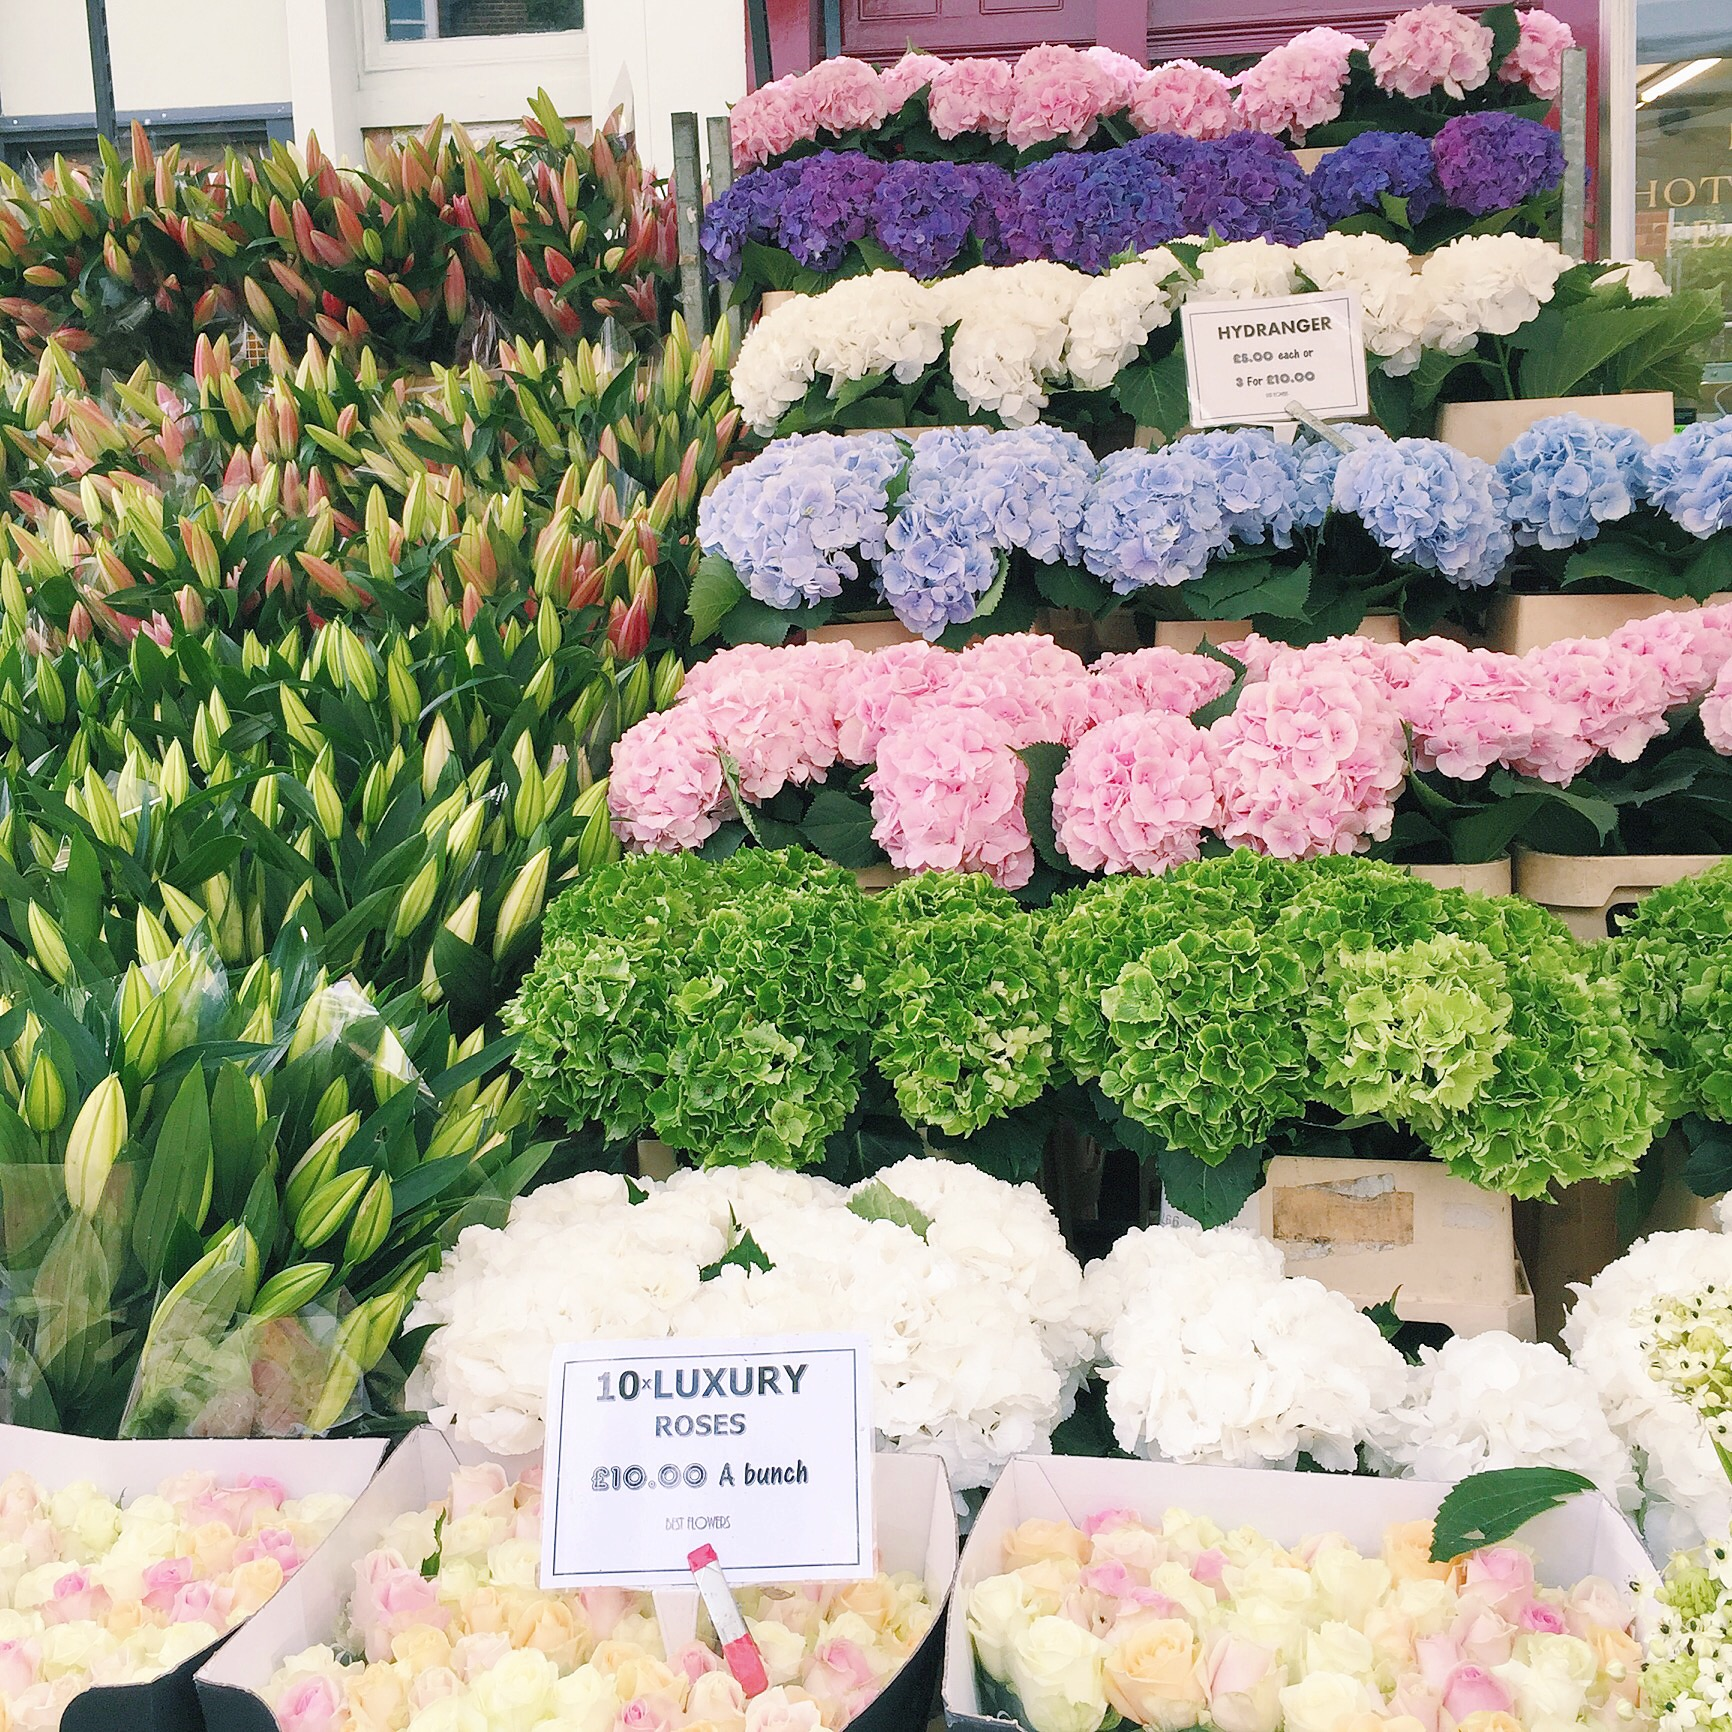 Columbia Road Flower Market, London | The Style Scribe